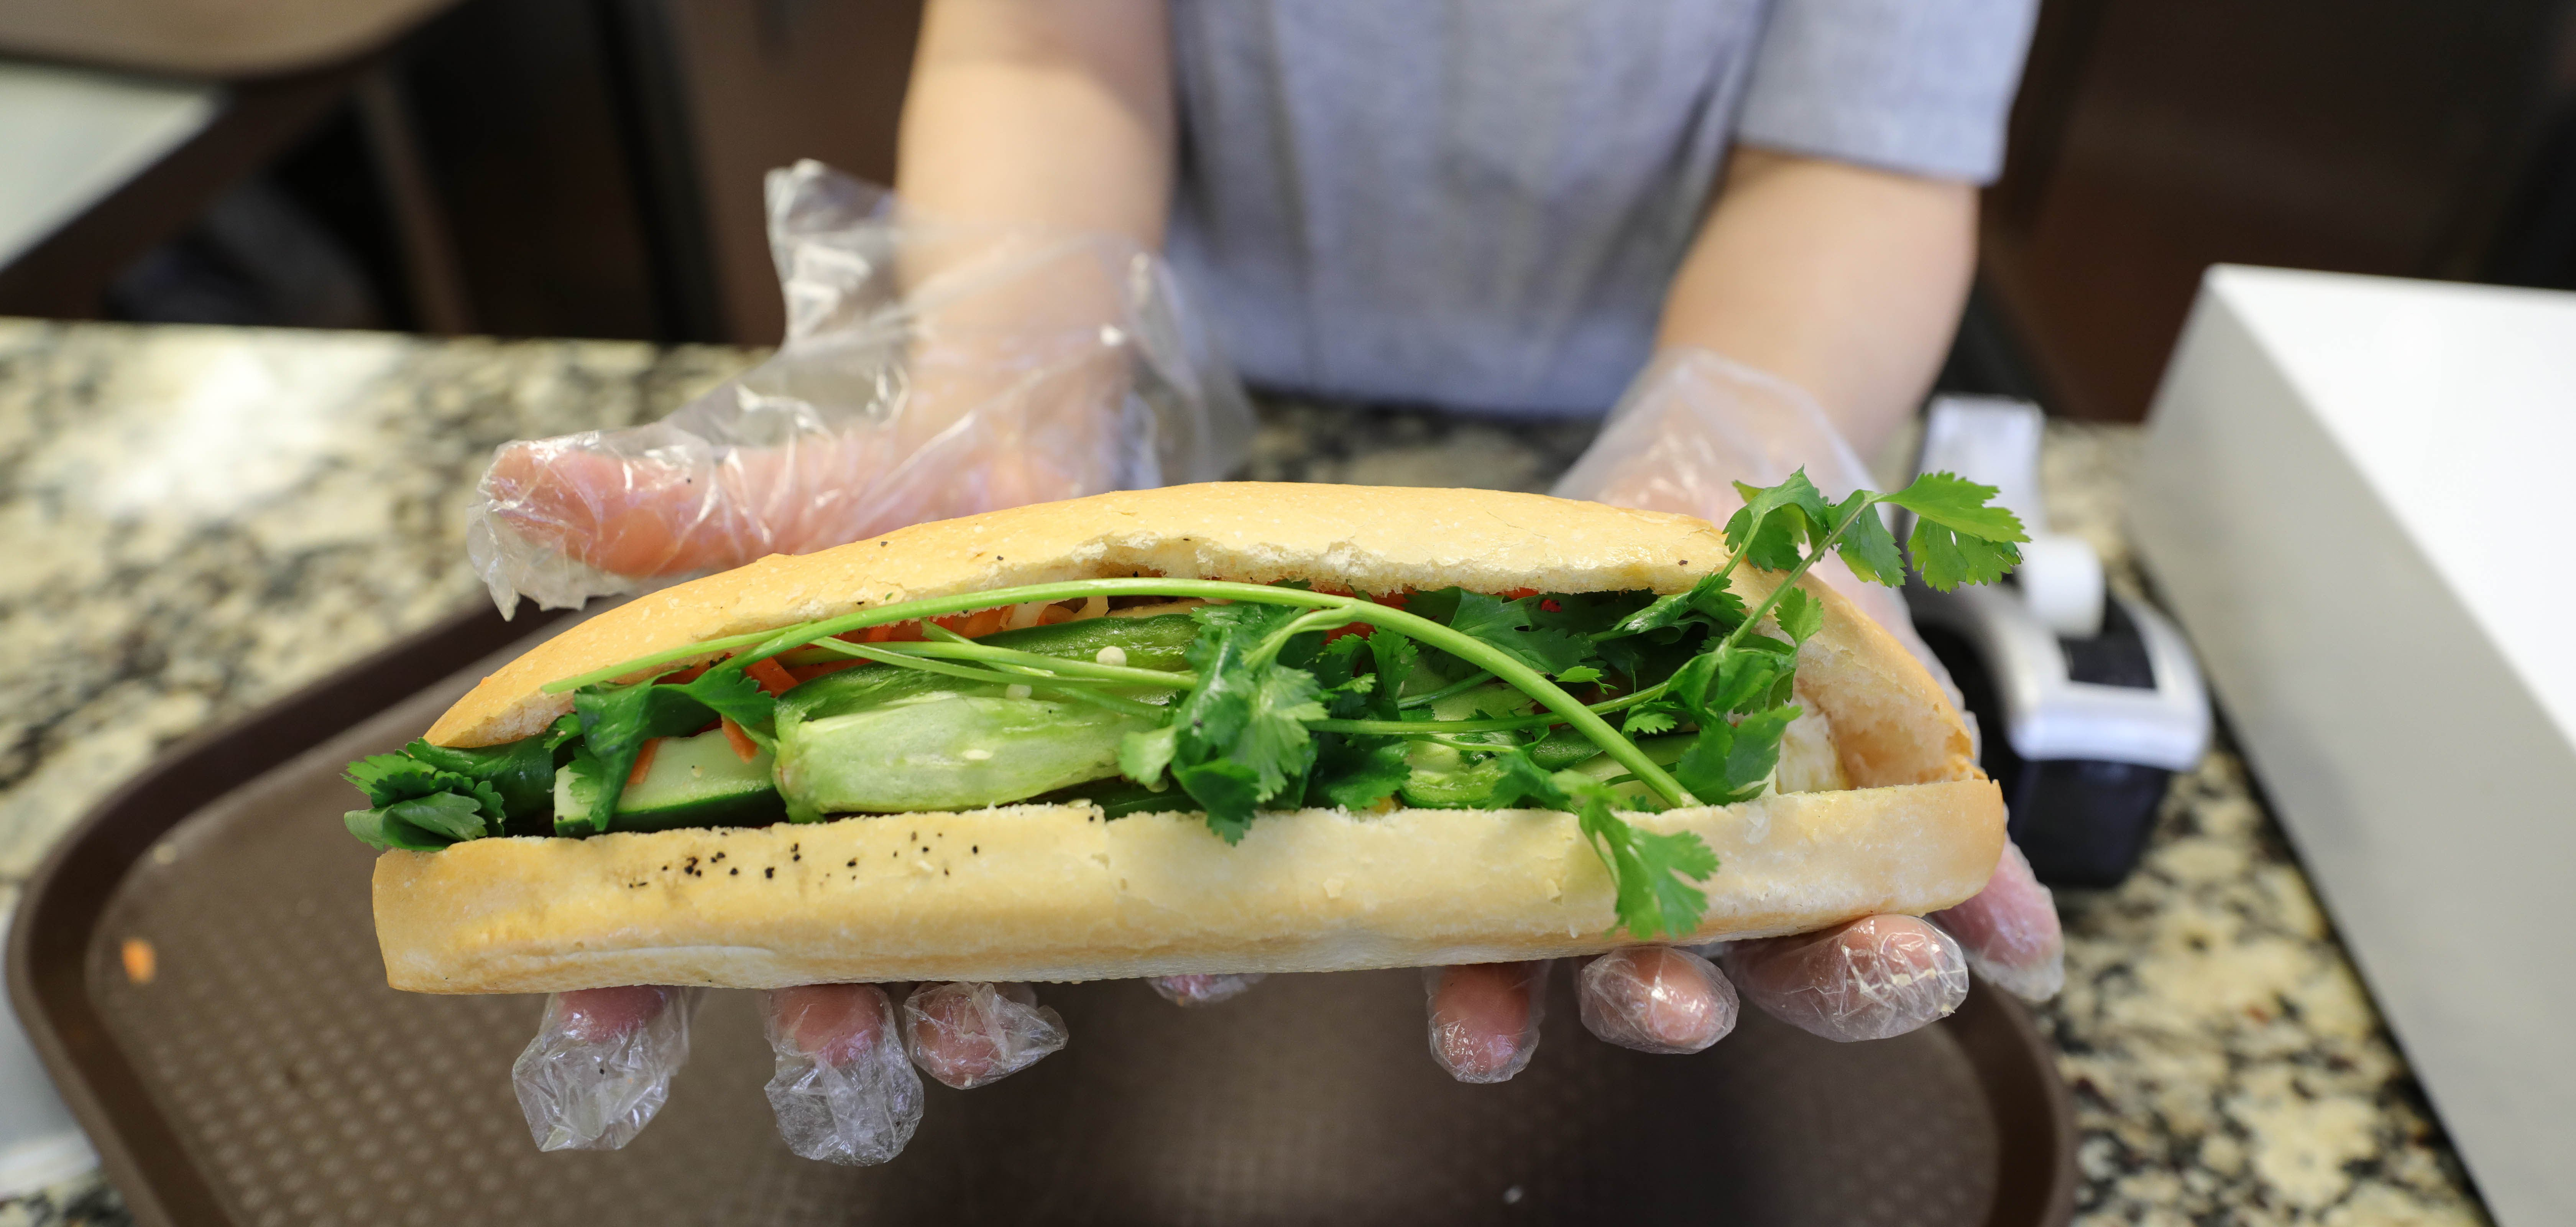 A baguette filled with meat, cucumber, and cilantro at Viet Hot Bread in East Tulsa.